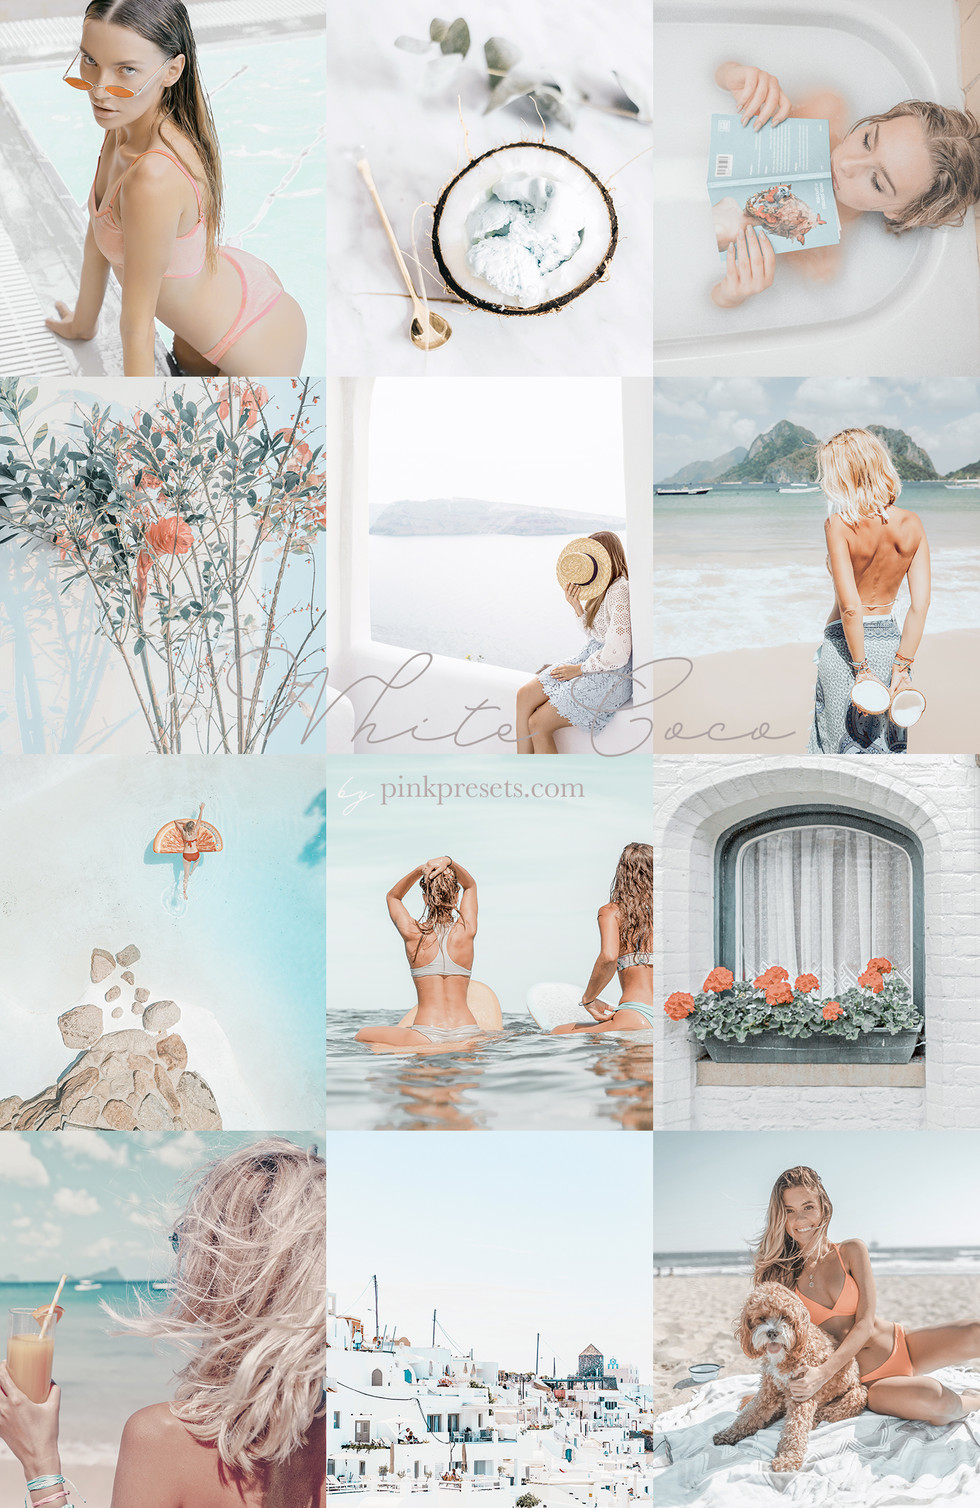 White Coco Lightroom Presets for Mobile